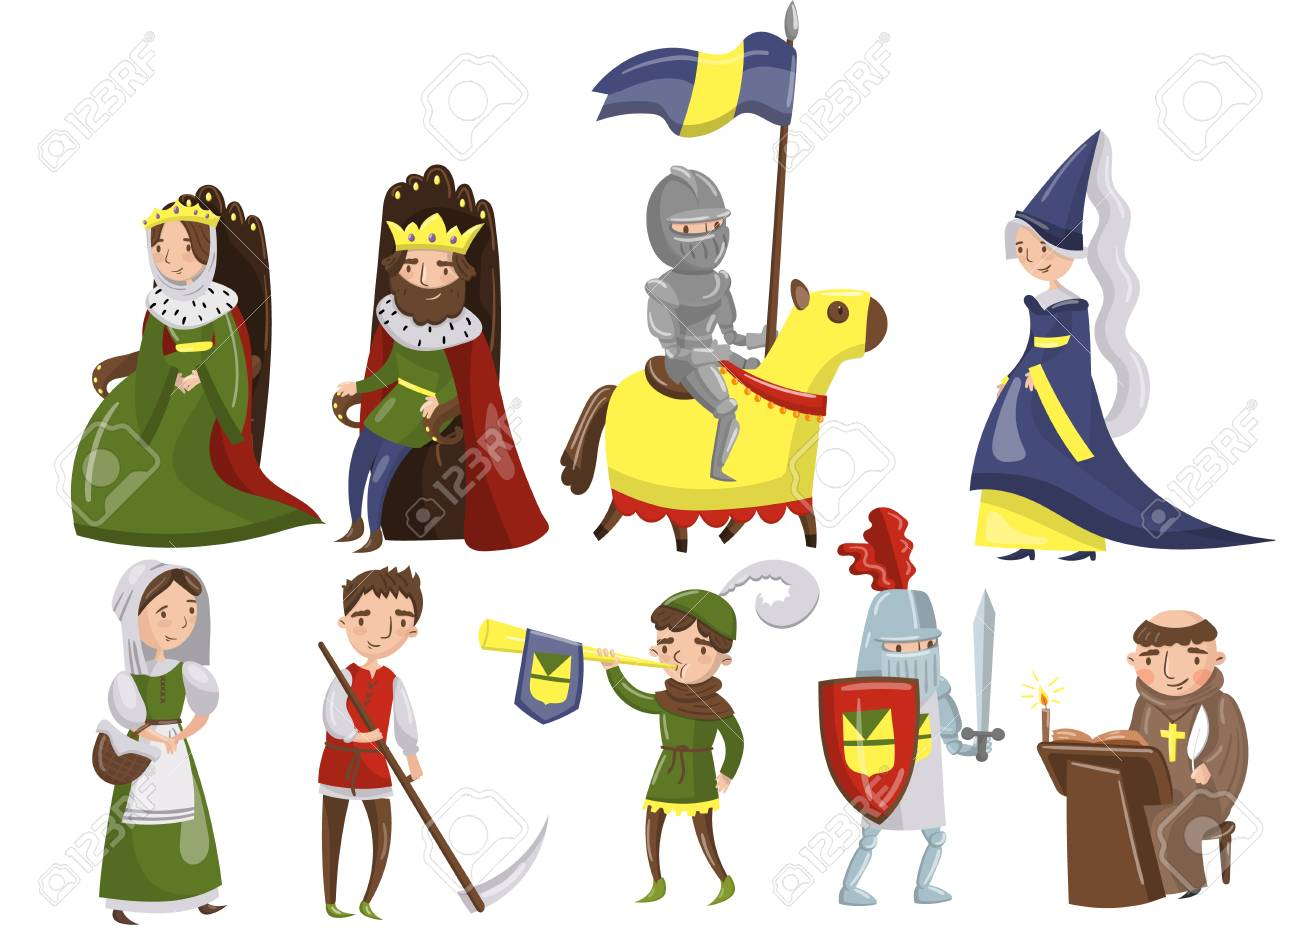 Medieval people set, characters of middle ages historic period vector Illustrations. - 94025219